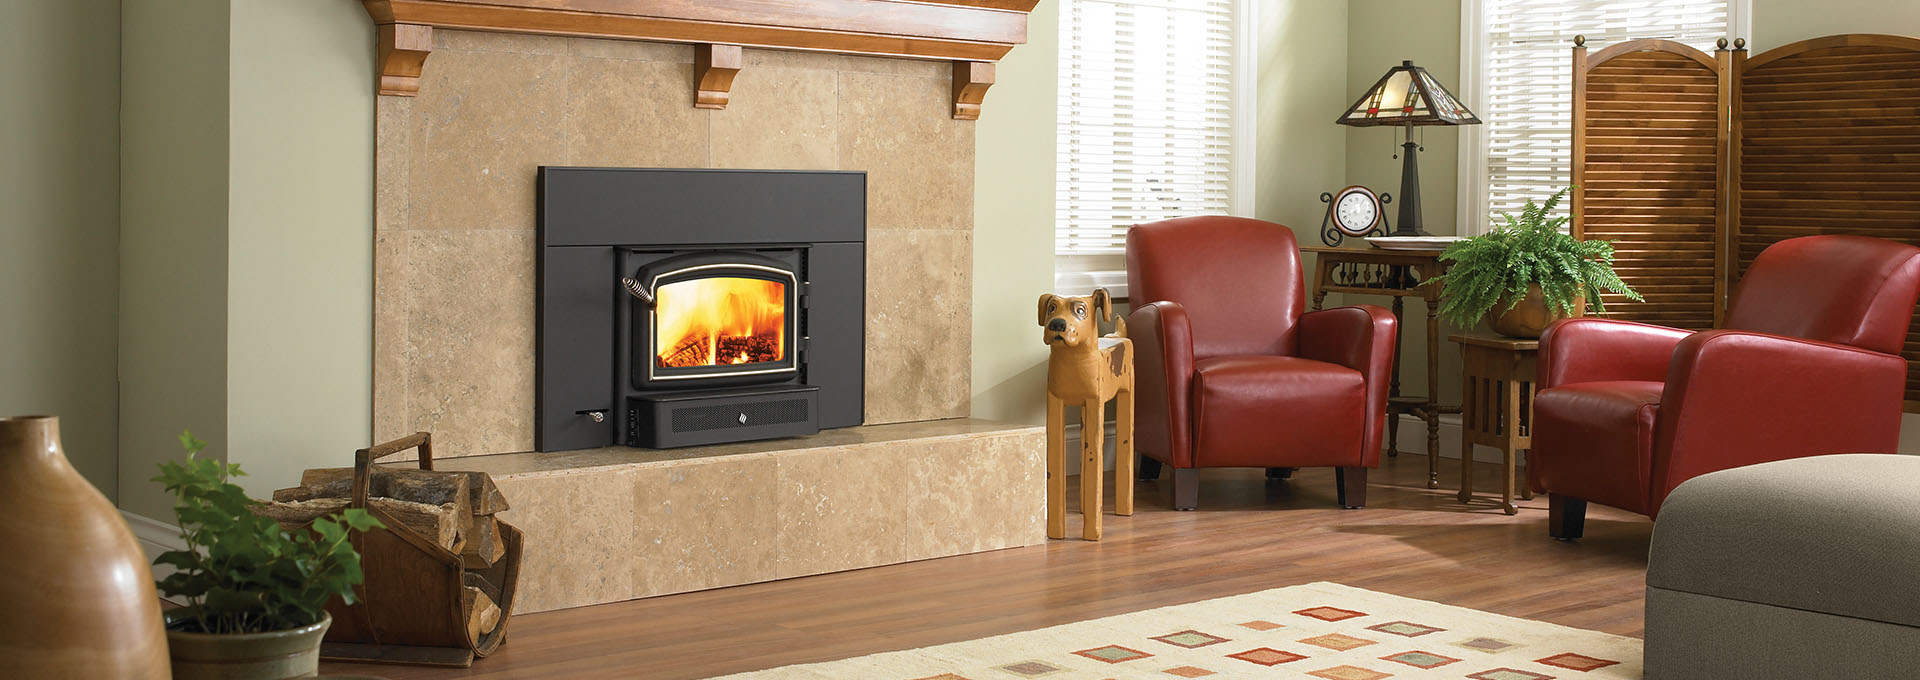 Insert Double Combustion Wood Fireplace Insert Classic I1200 Regency Fireplace Products